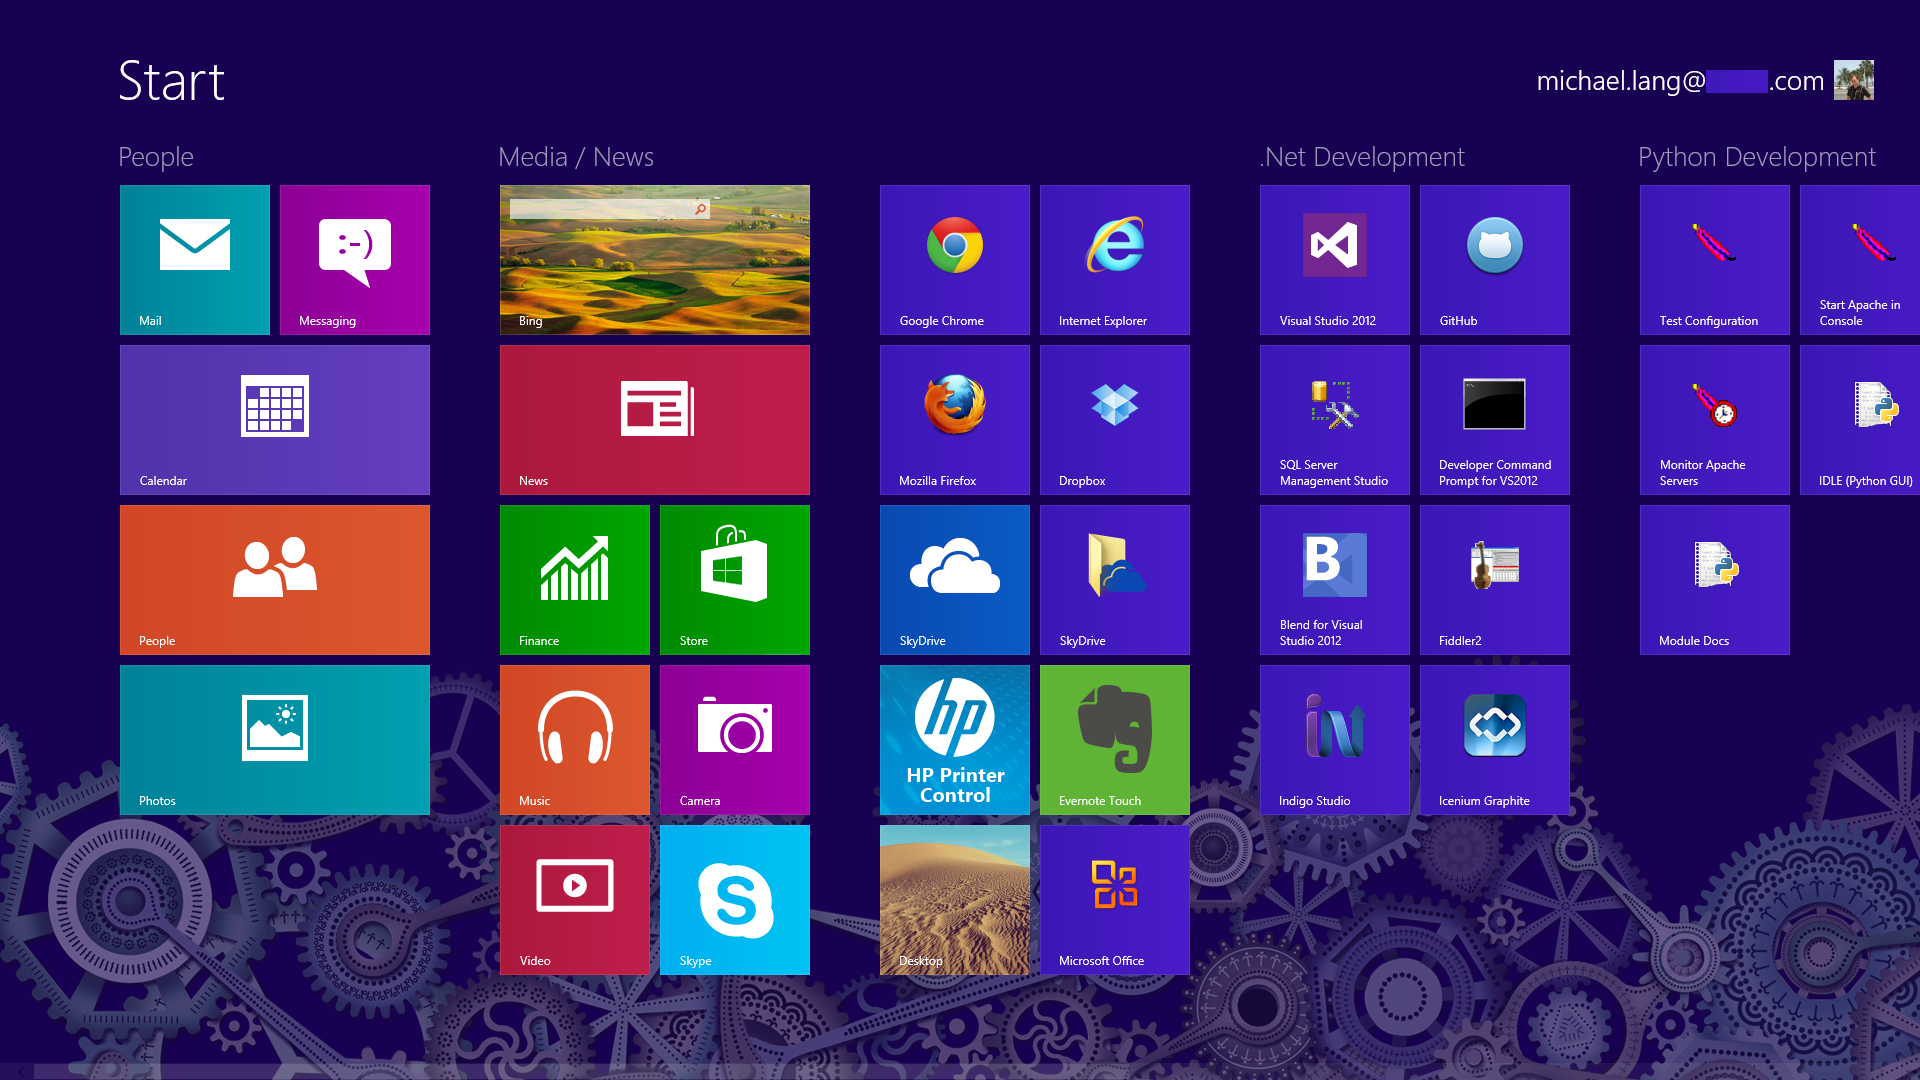 Windows 8 start screen, Desktop, and Touch